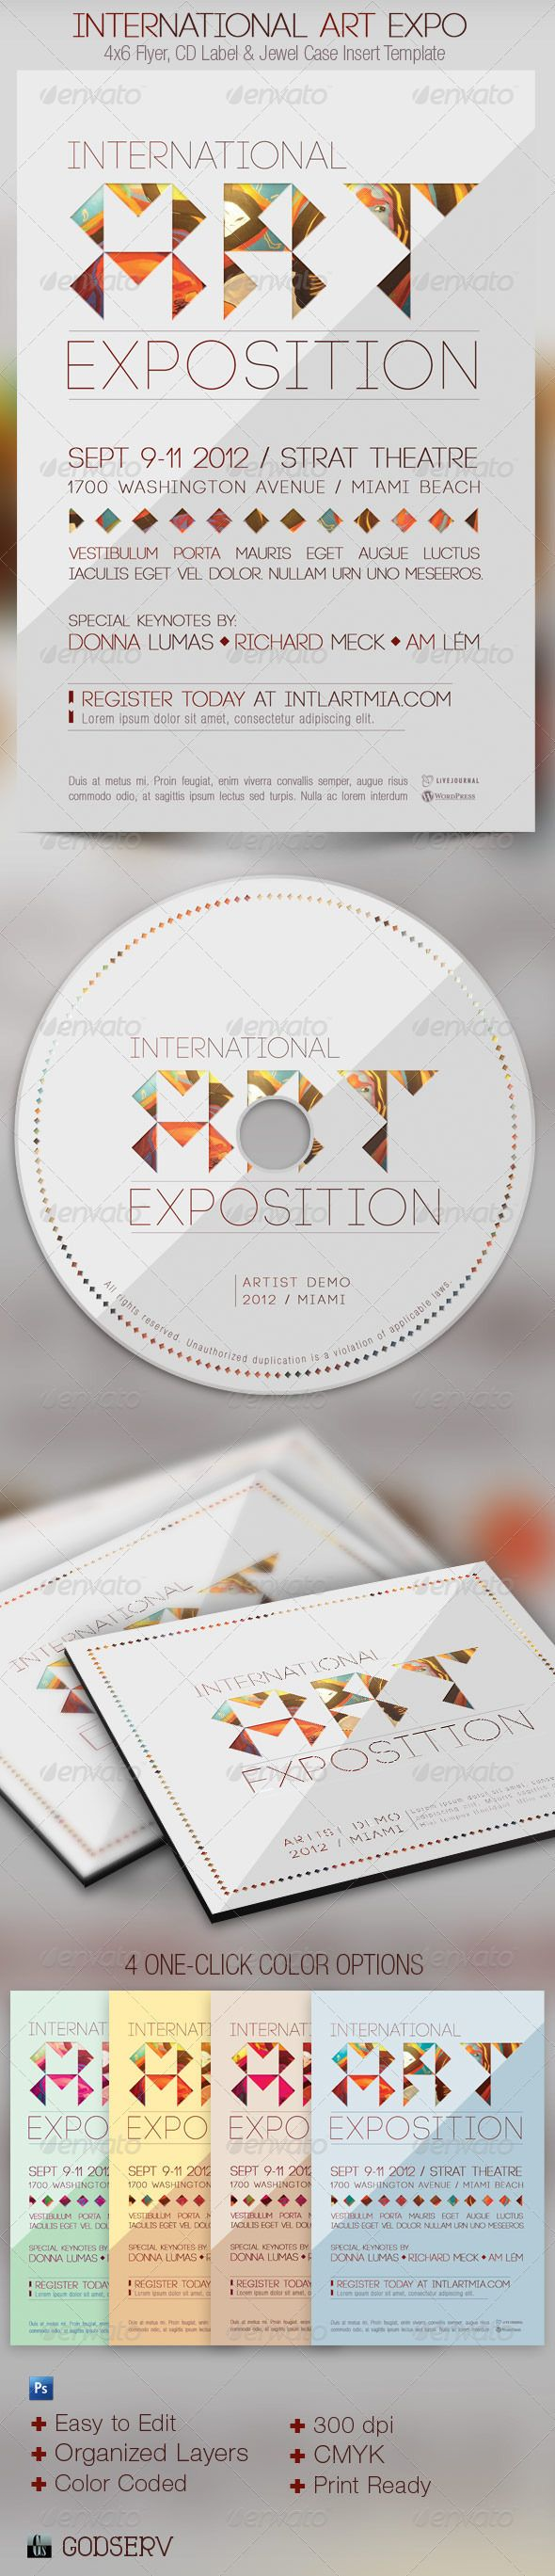 The International Art Expo Flyer and CD Template by Michael Taylor, via Behance